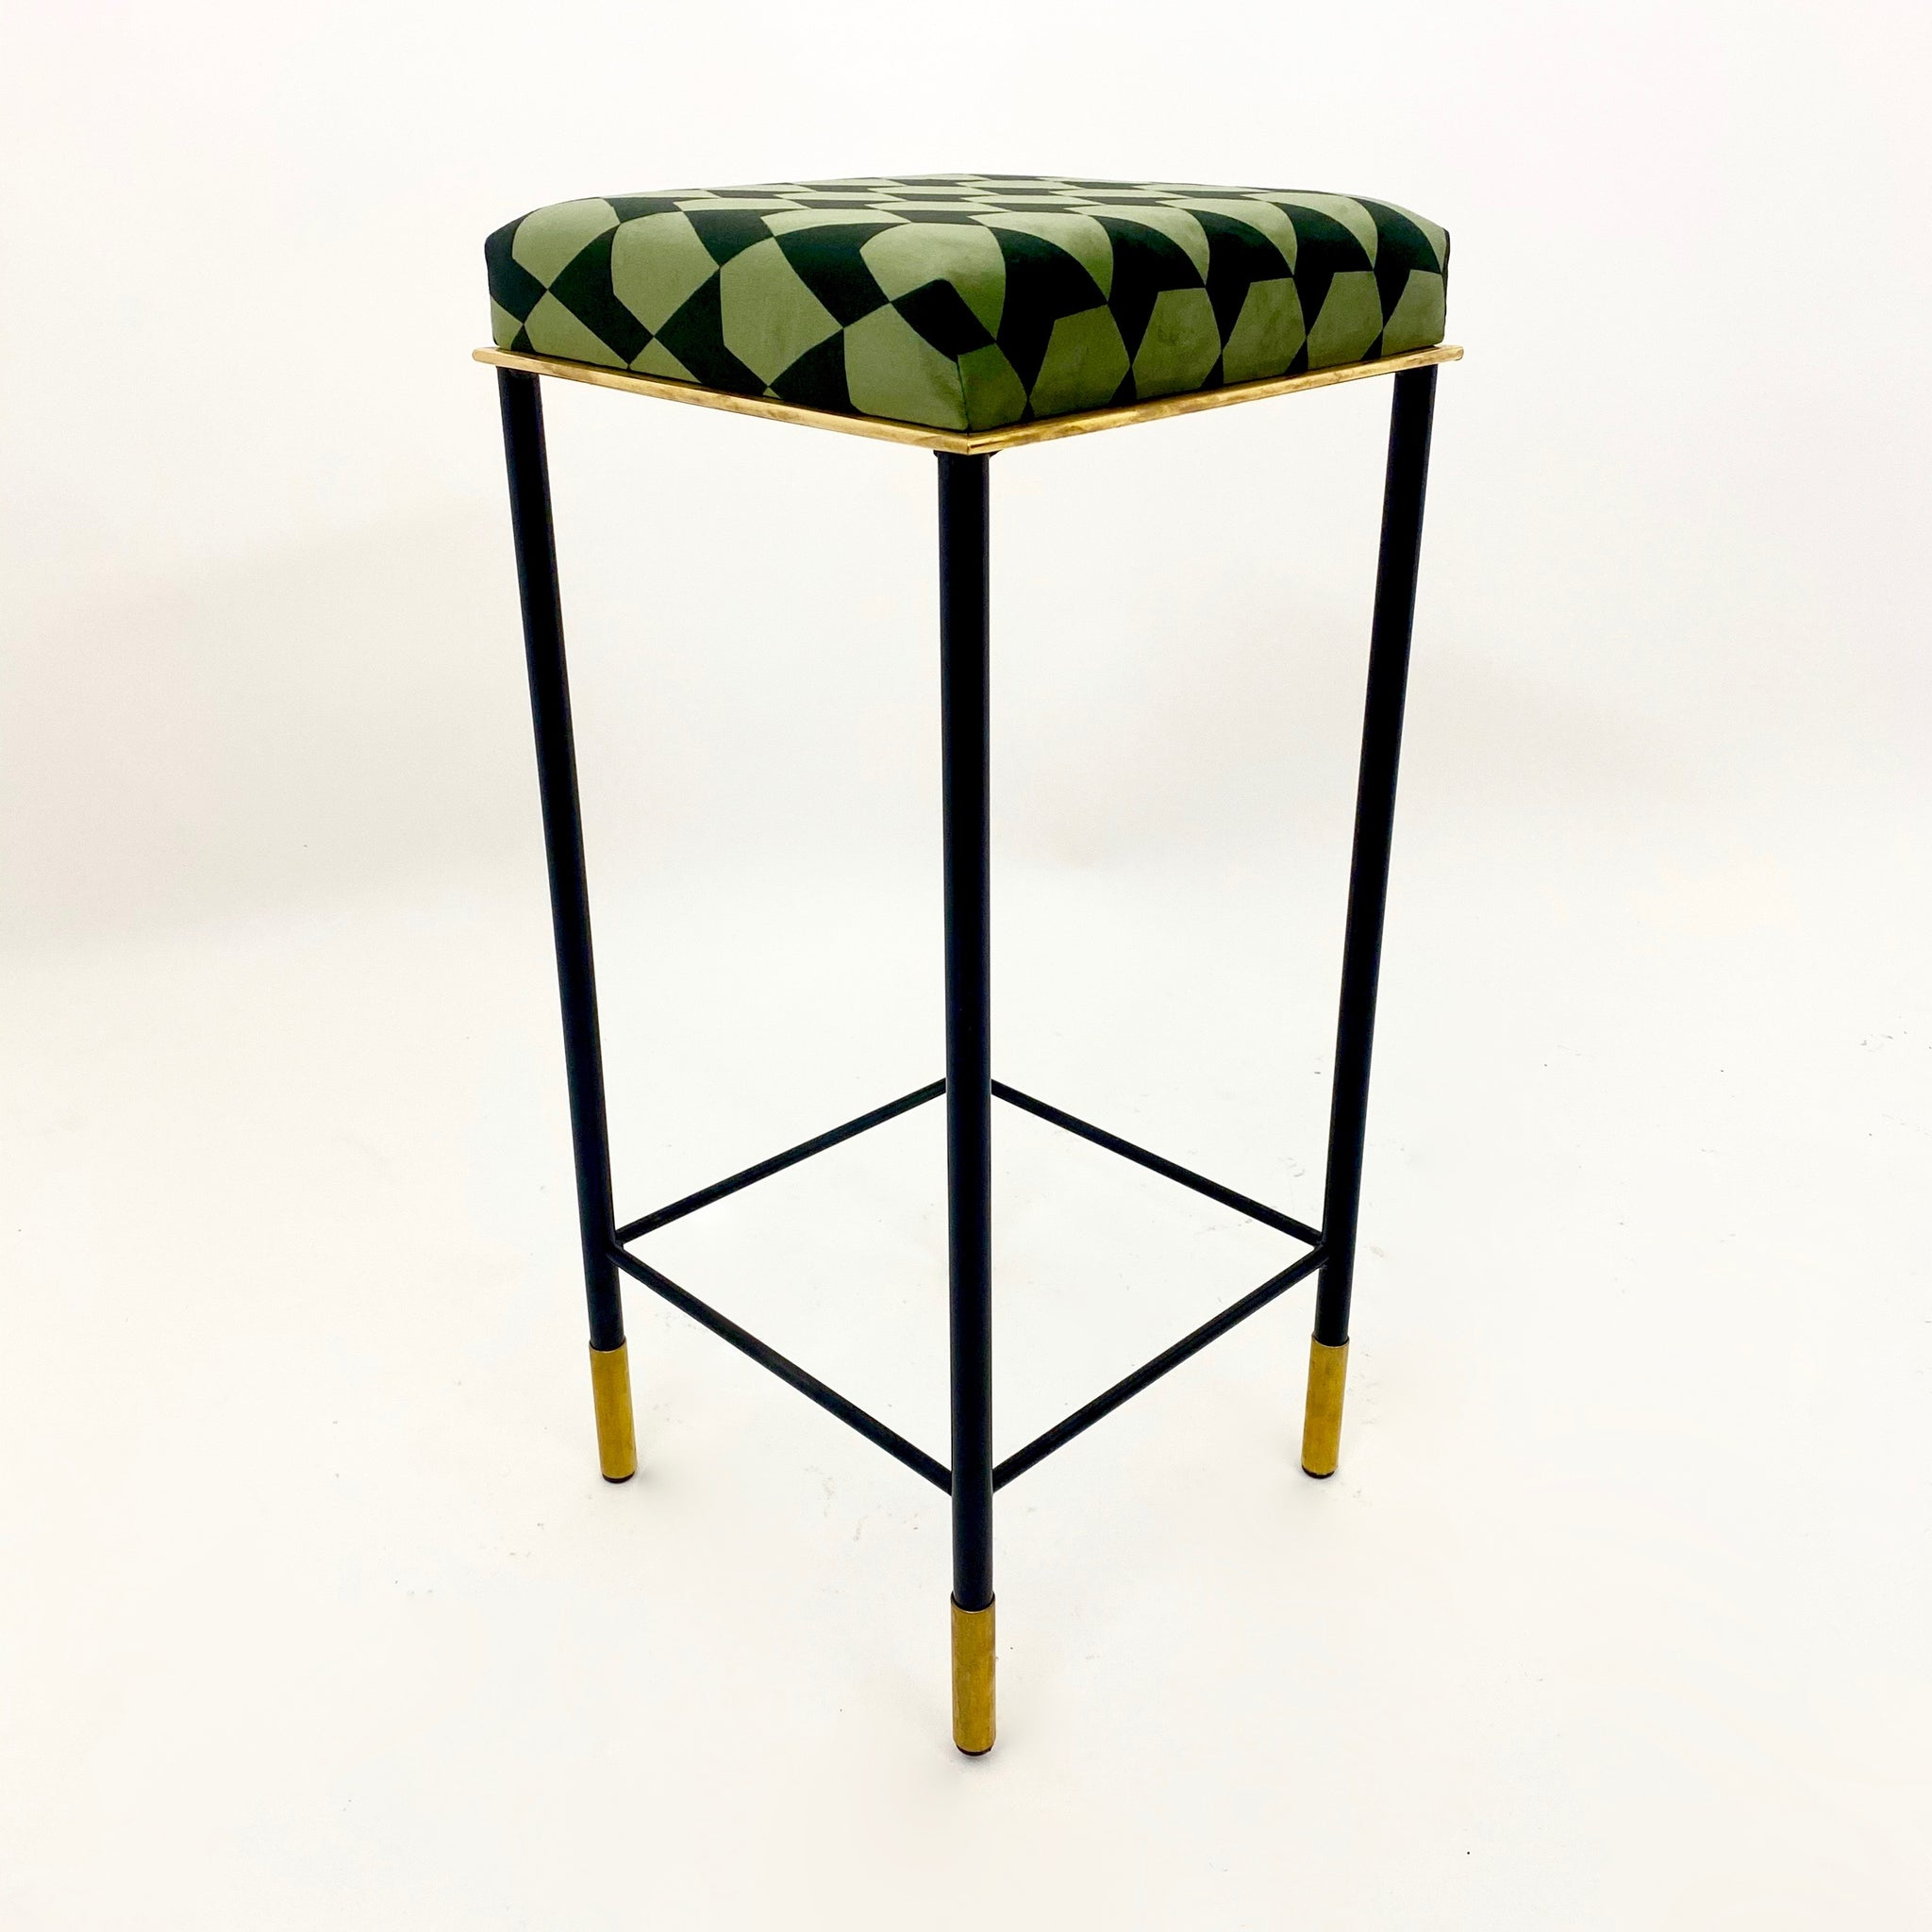 4 vintage Italian 'Harlequin' bar stools with brass details.